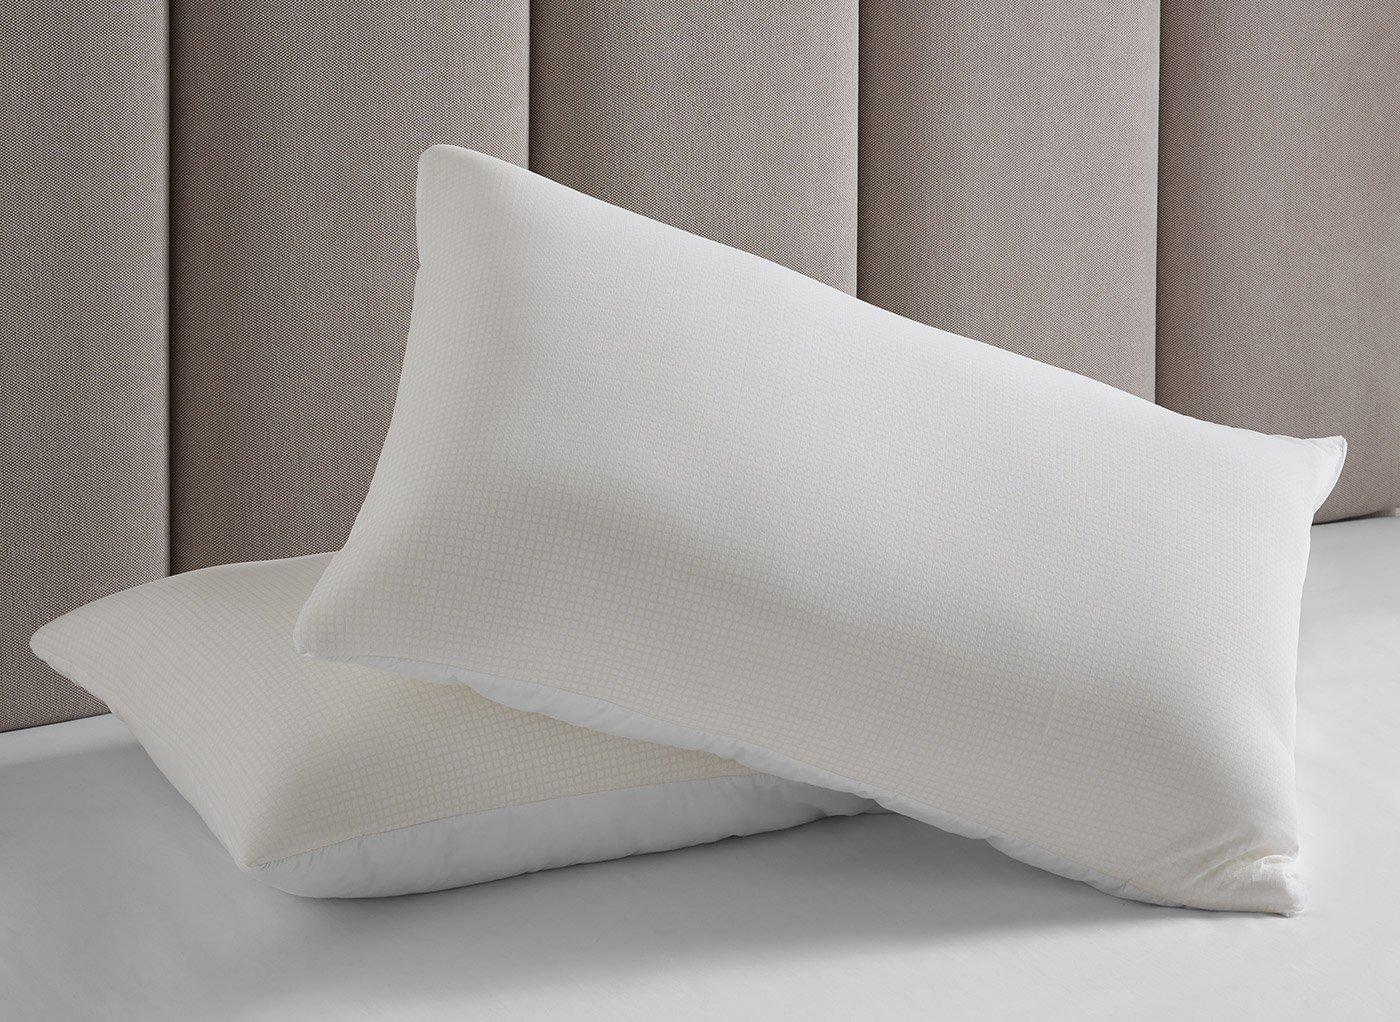 Therapur Cool Pillow Therapur Bedding Brands Dreams